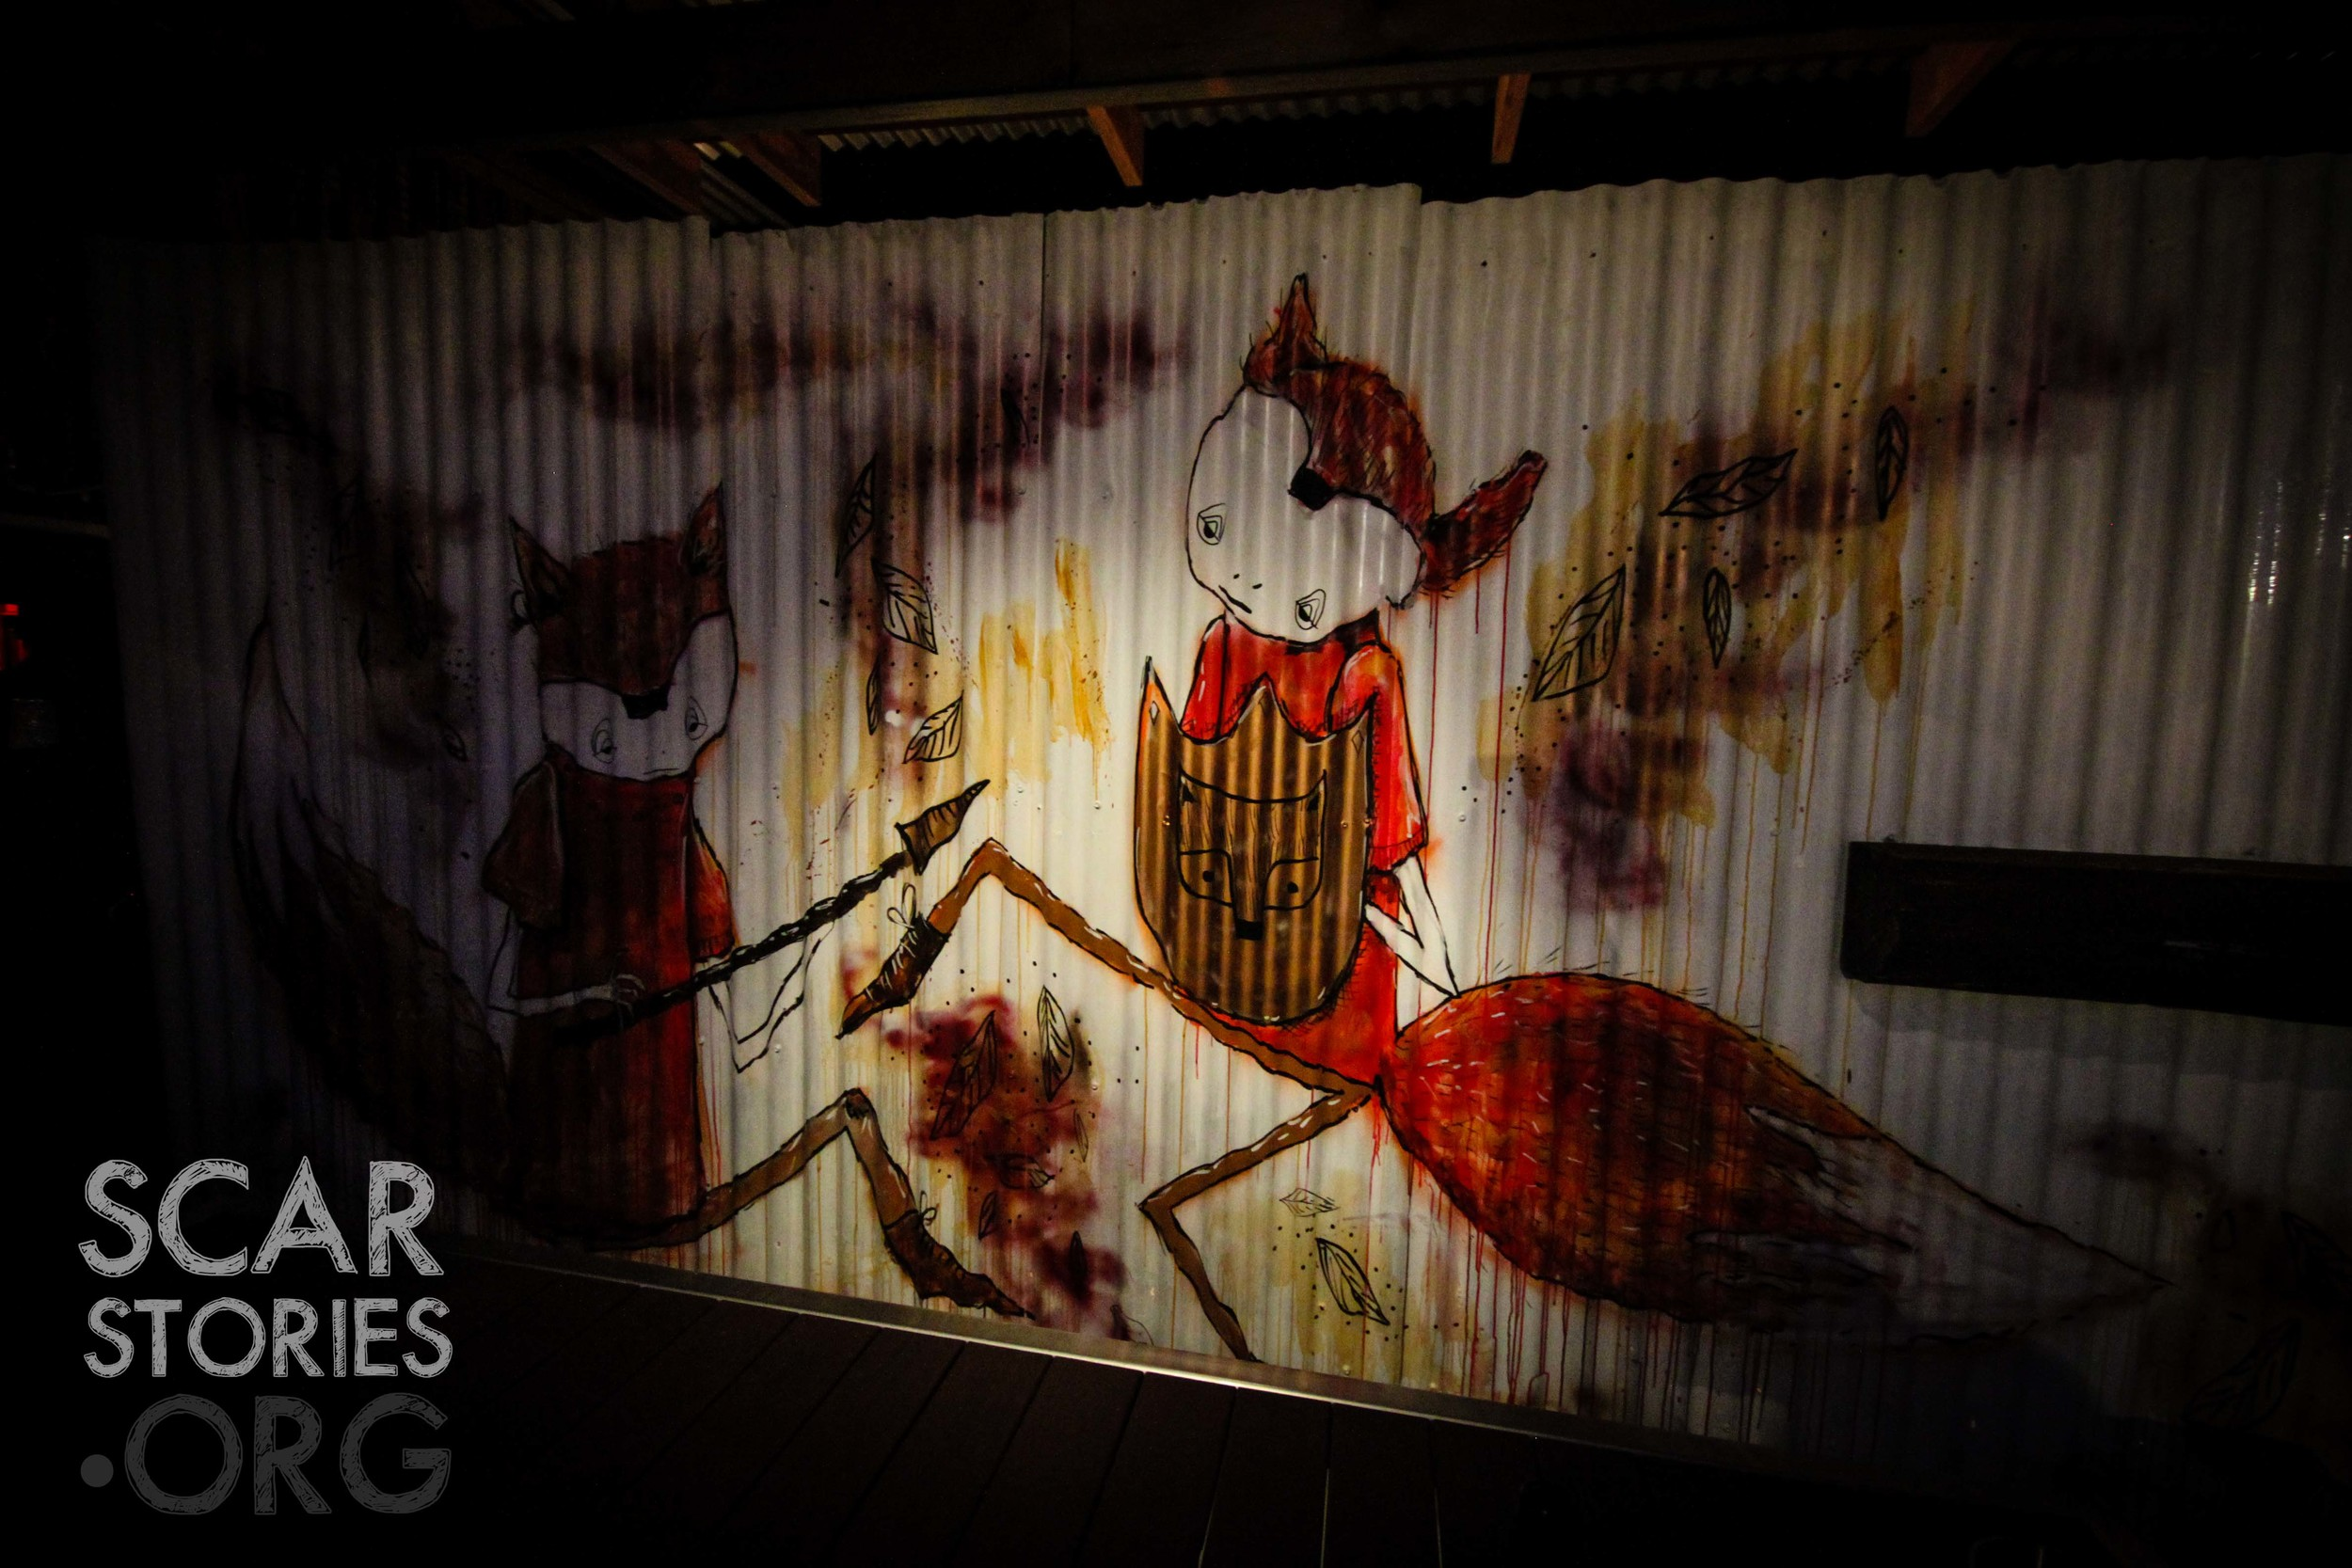 The live art by  Barek  was really something special.  Foxy Bean  now features a permanent Barek piece. Go check it out!